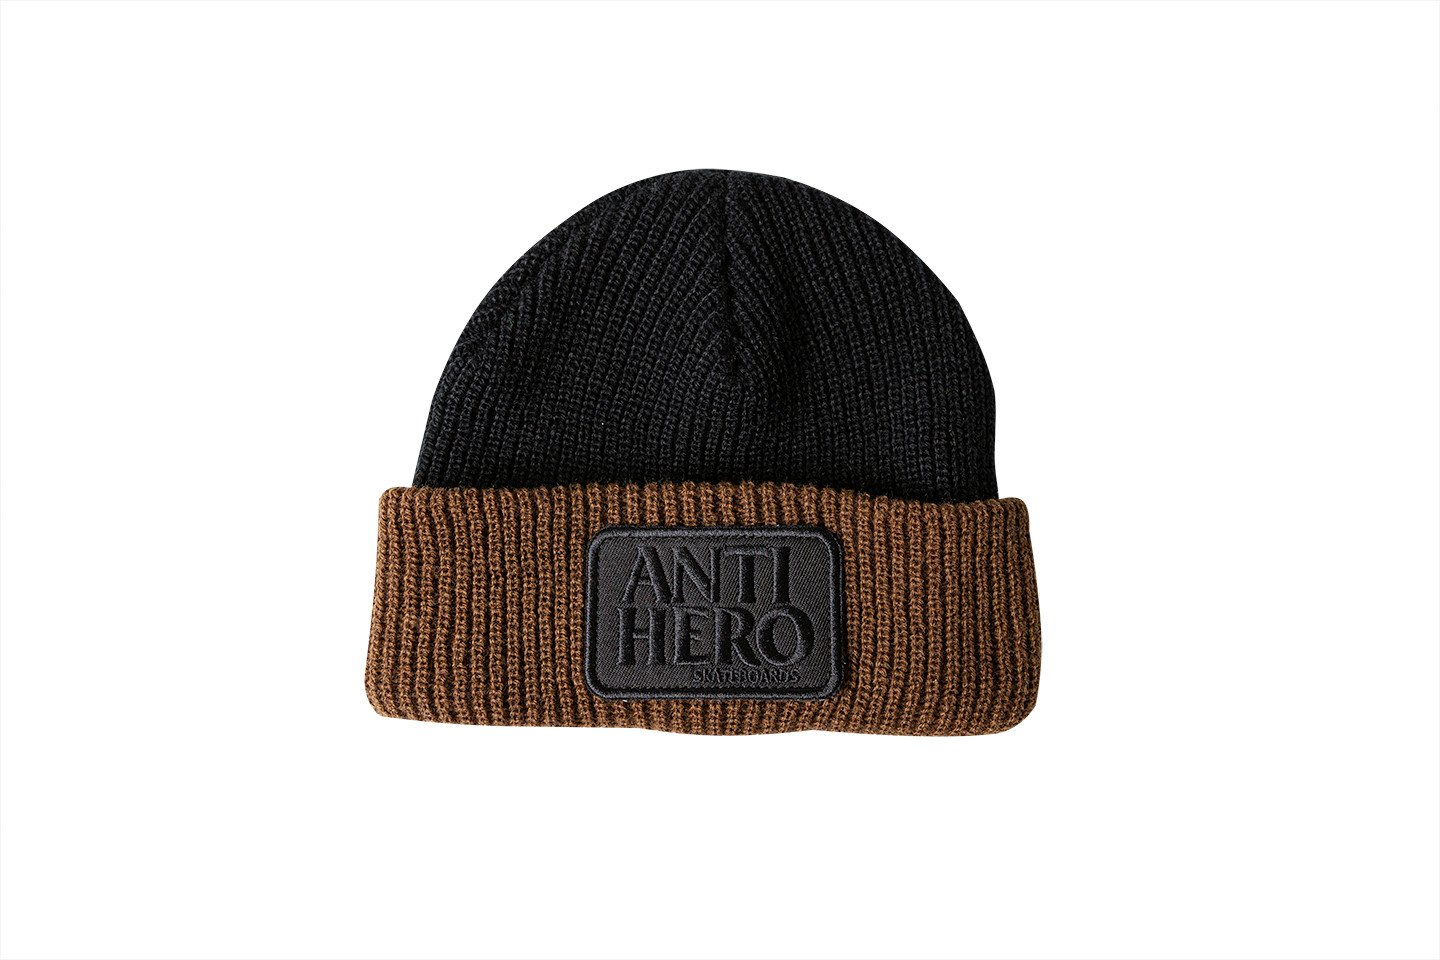 Antihero Reserve Patch Cuff Beanie Black/Brown